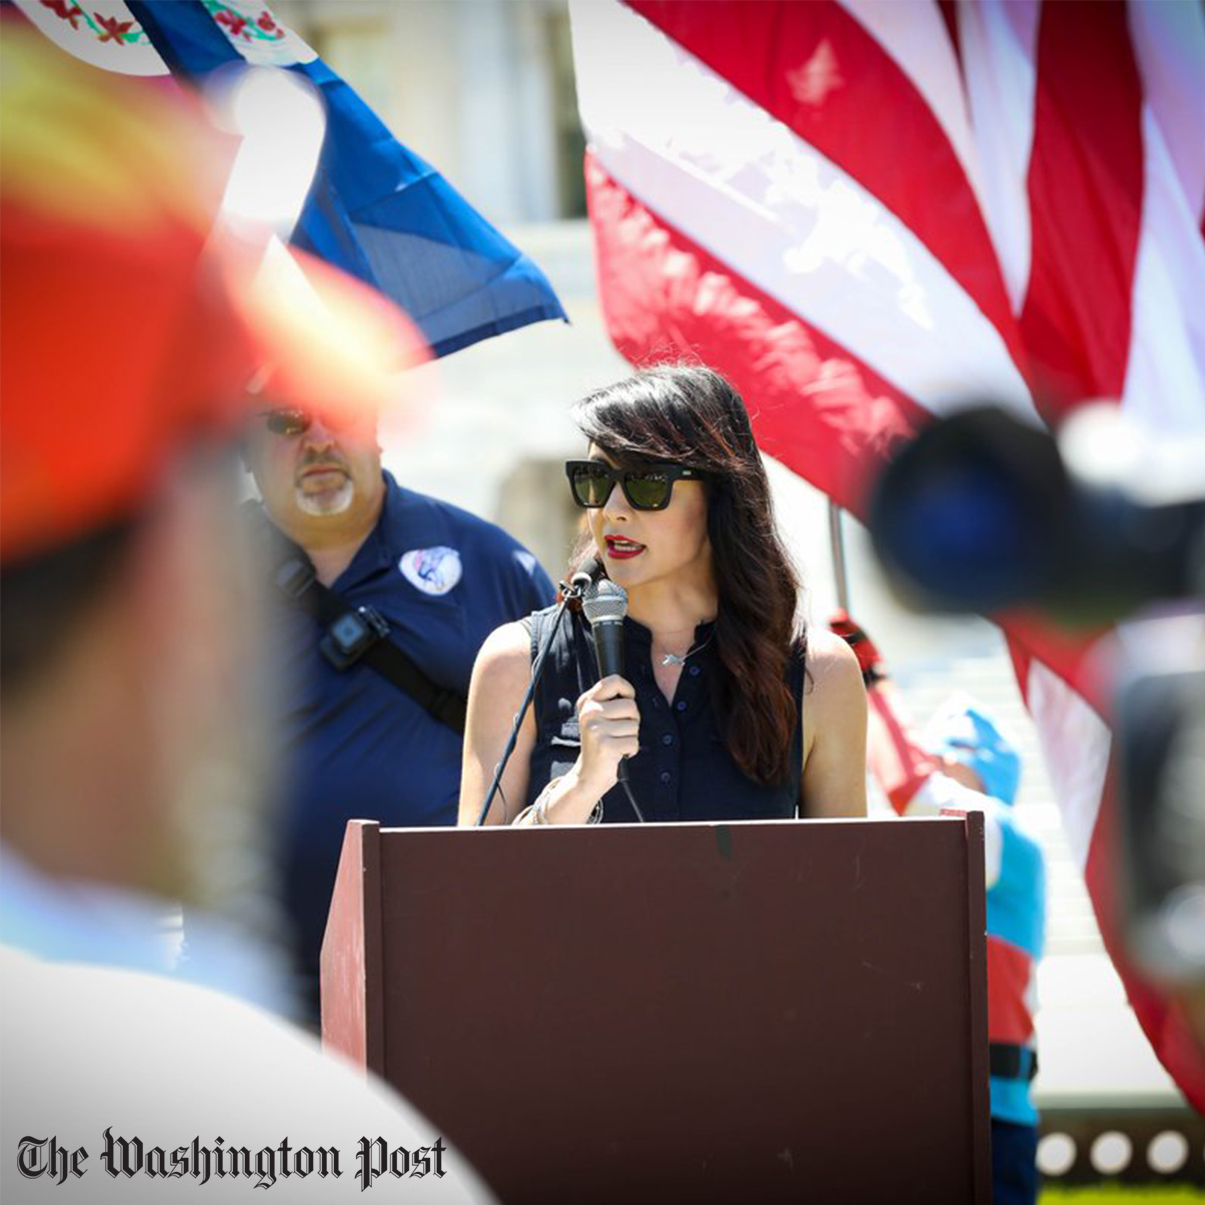 March for Our Rights Advocates for Gun Rights in D.C. Rally - The Washington Post | Video